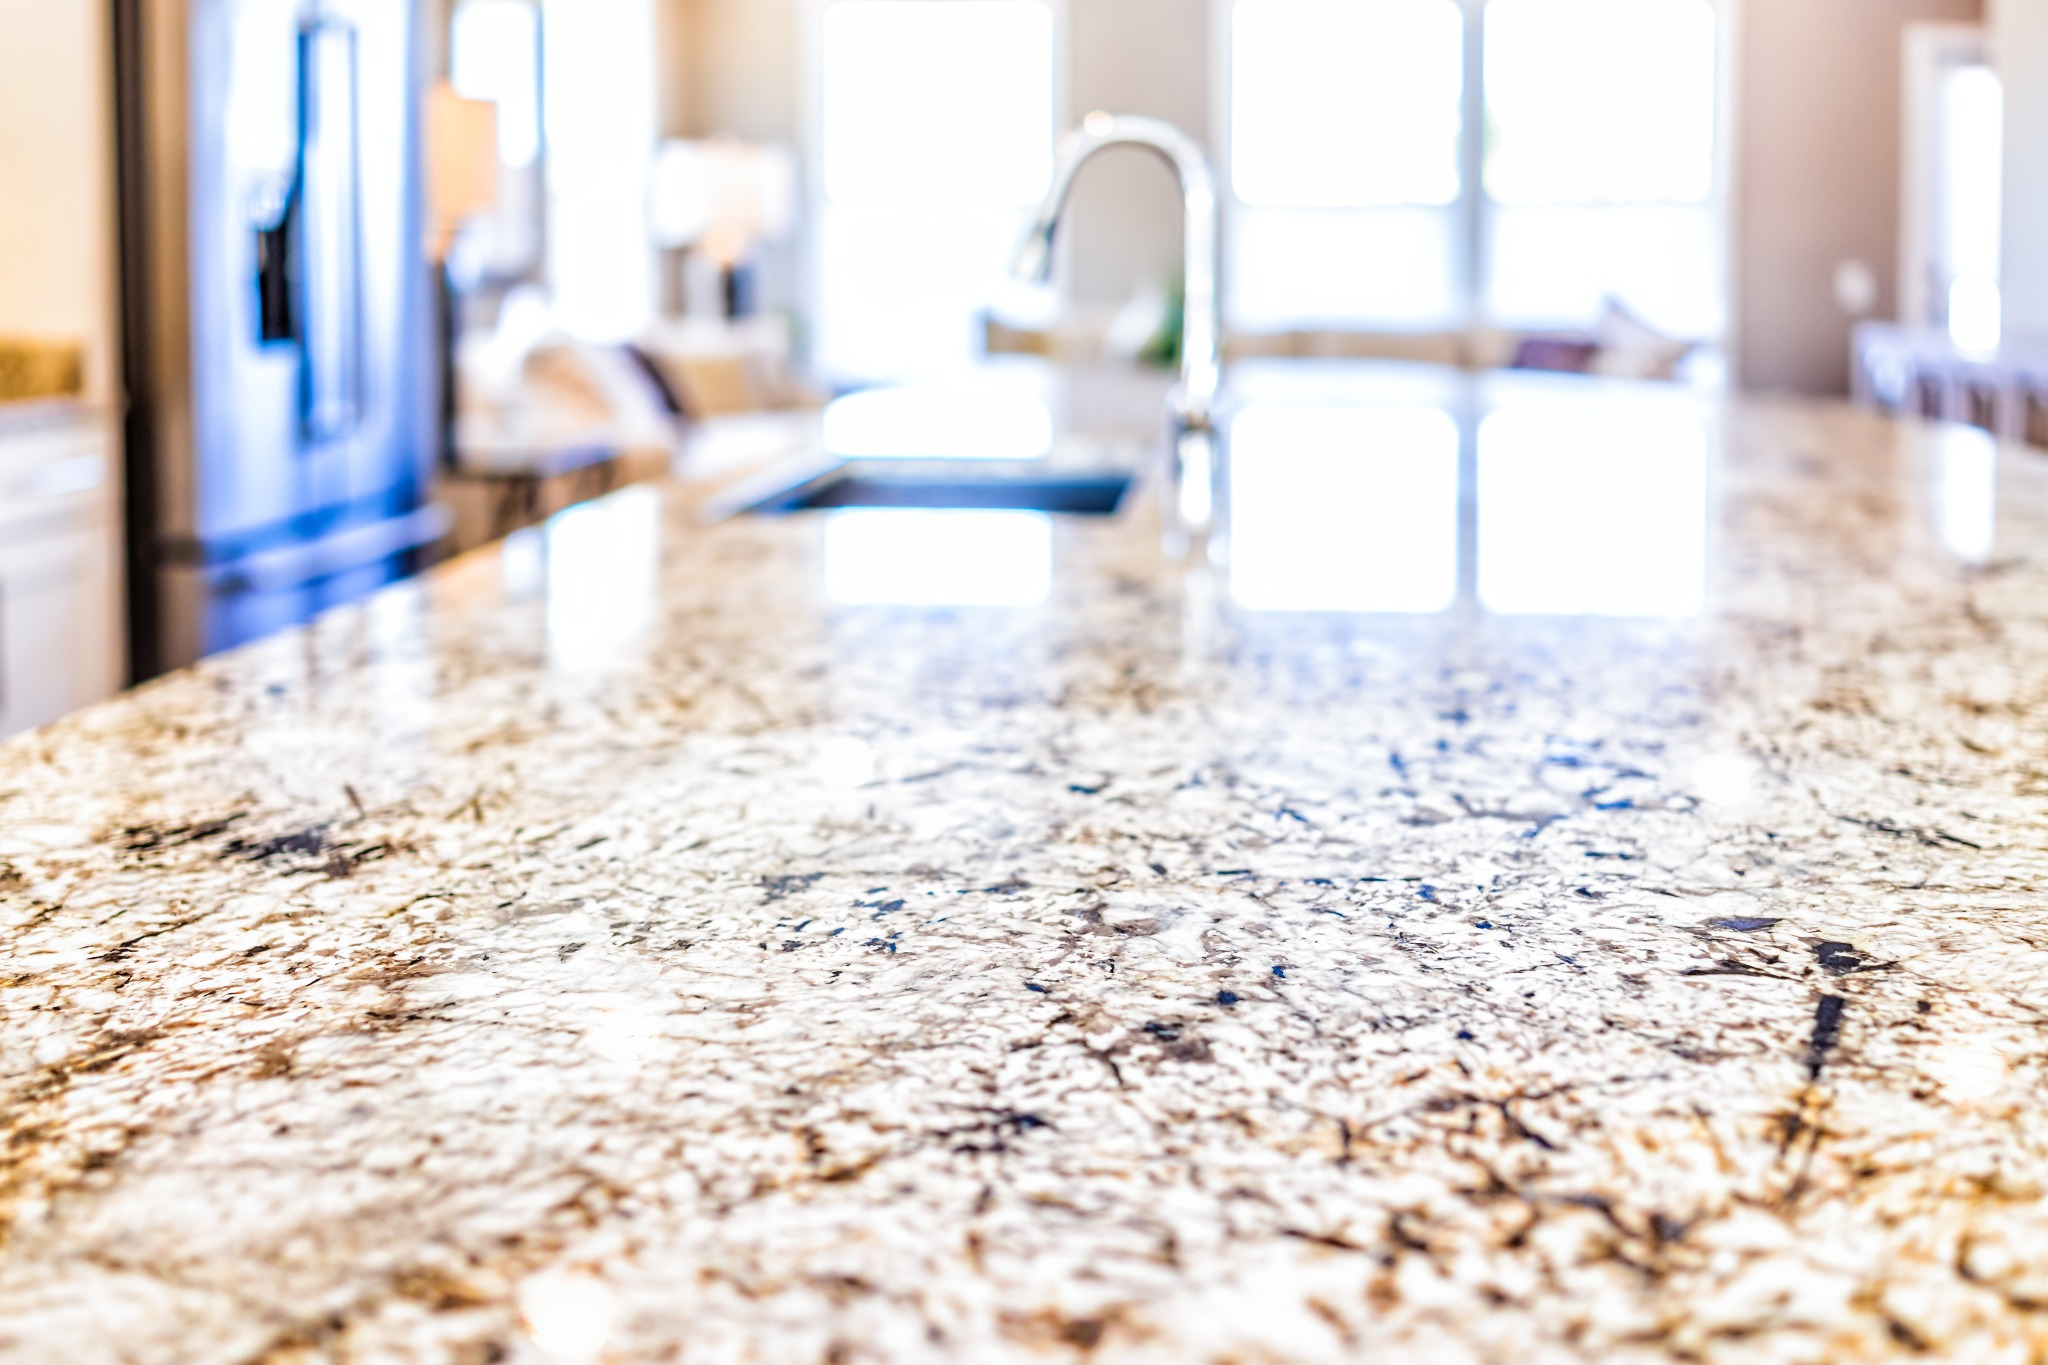 Brown stone countertops heated by FeelsWarm countertop heaters.